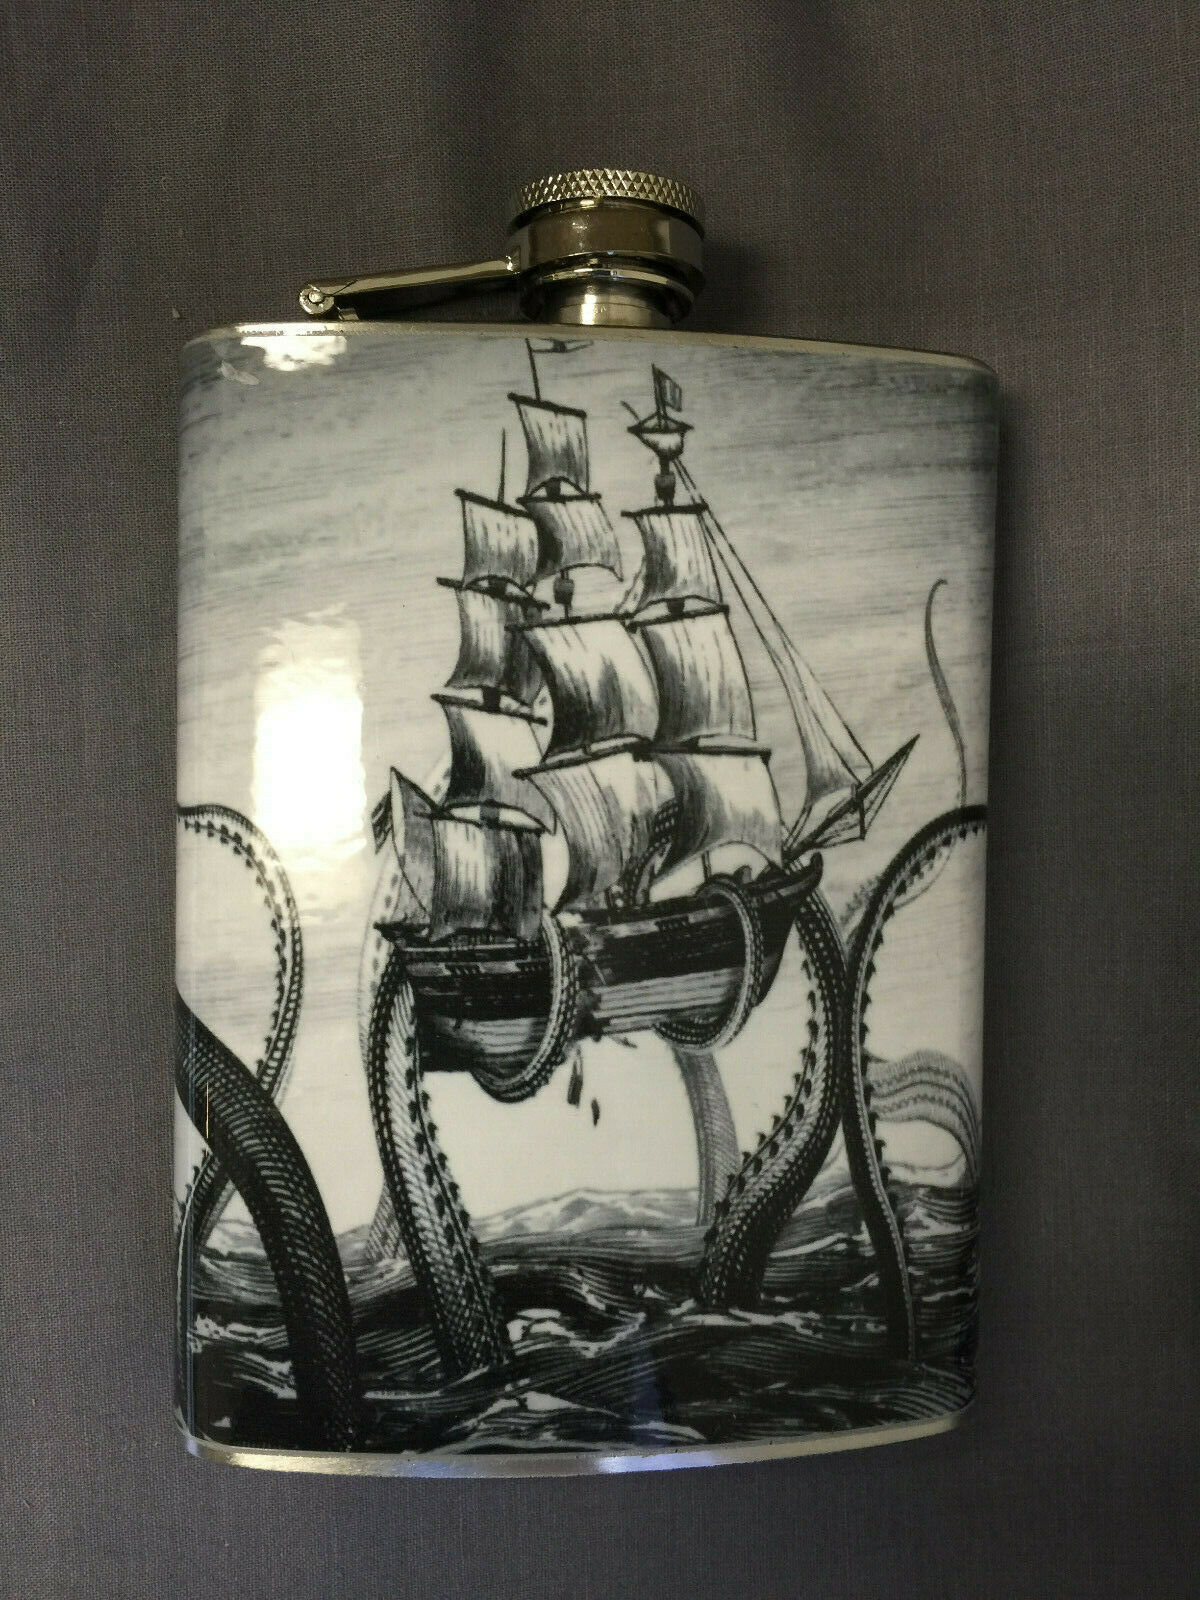 Octopus Kraken Attack Flask 8oz Stainless Steel Drinking Whiskey Clearance item